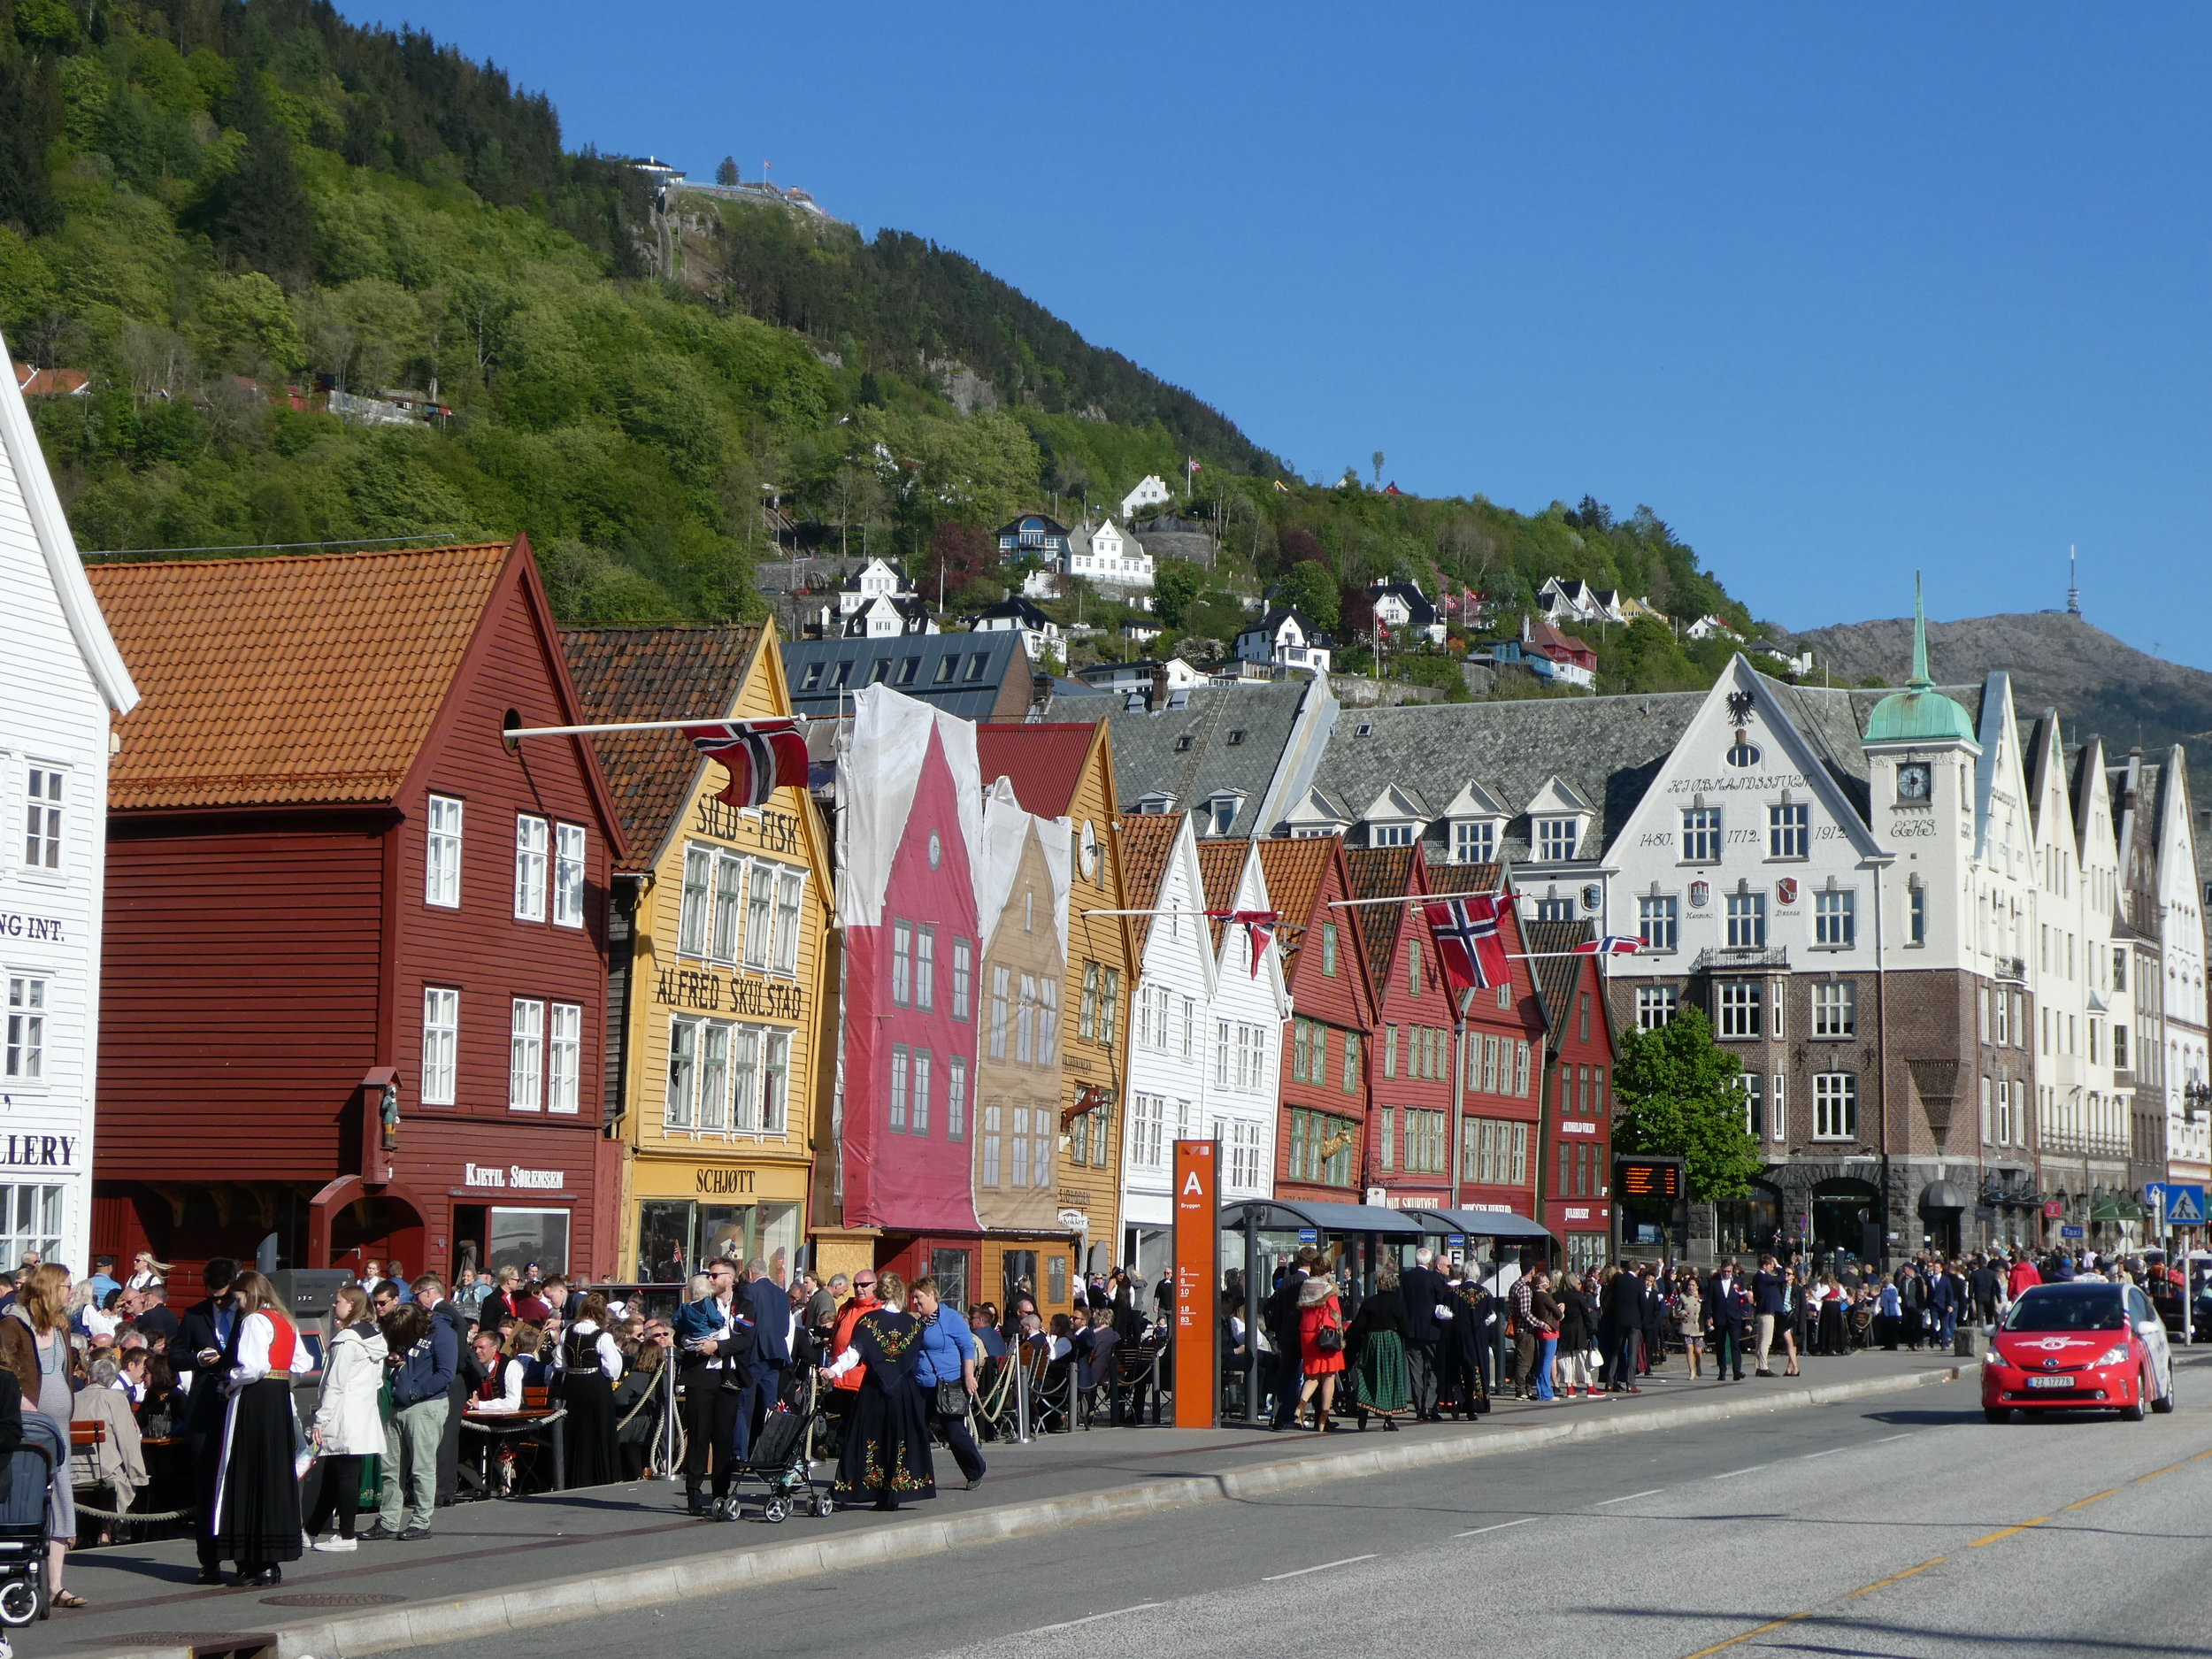 Bergen is a very pretty city, lying beneath steep hillsides. Here we are in the German Hanseatic part of town.